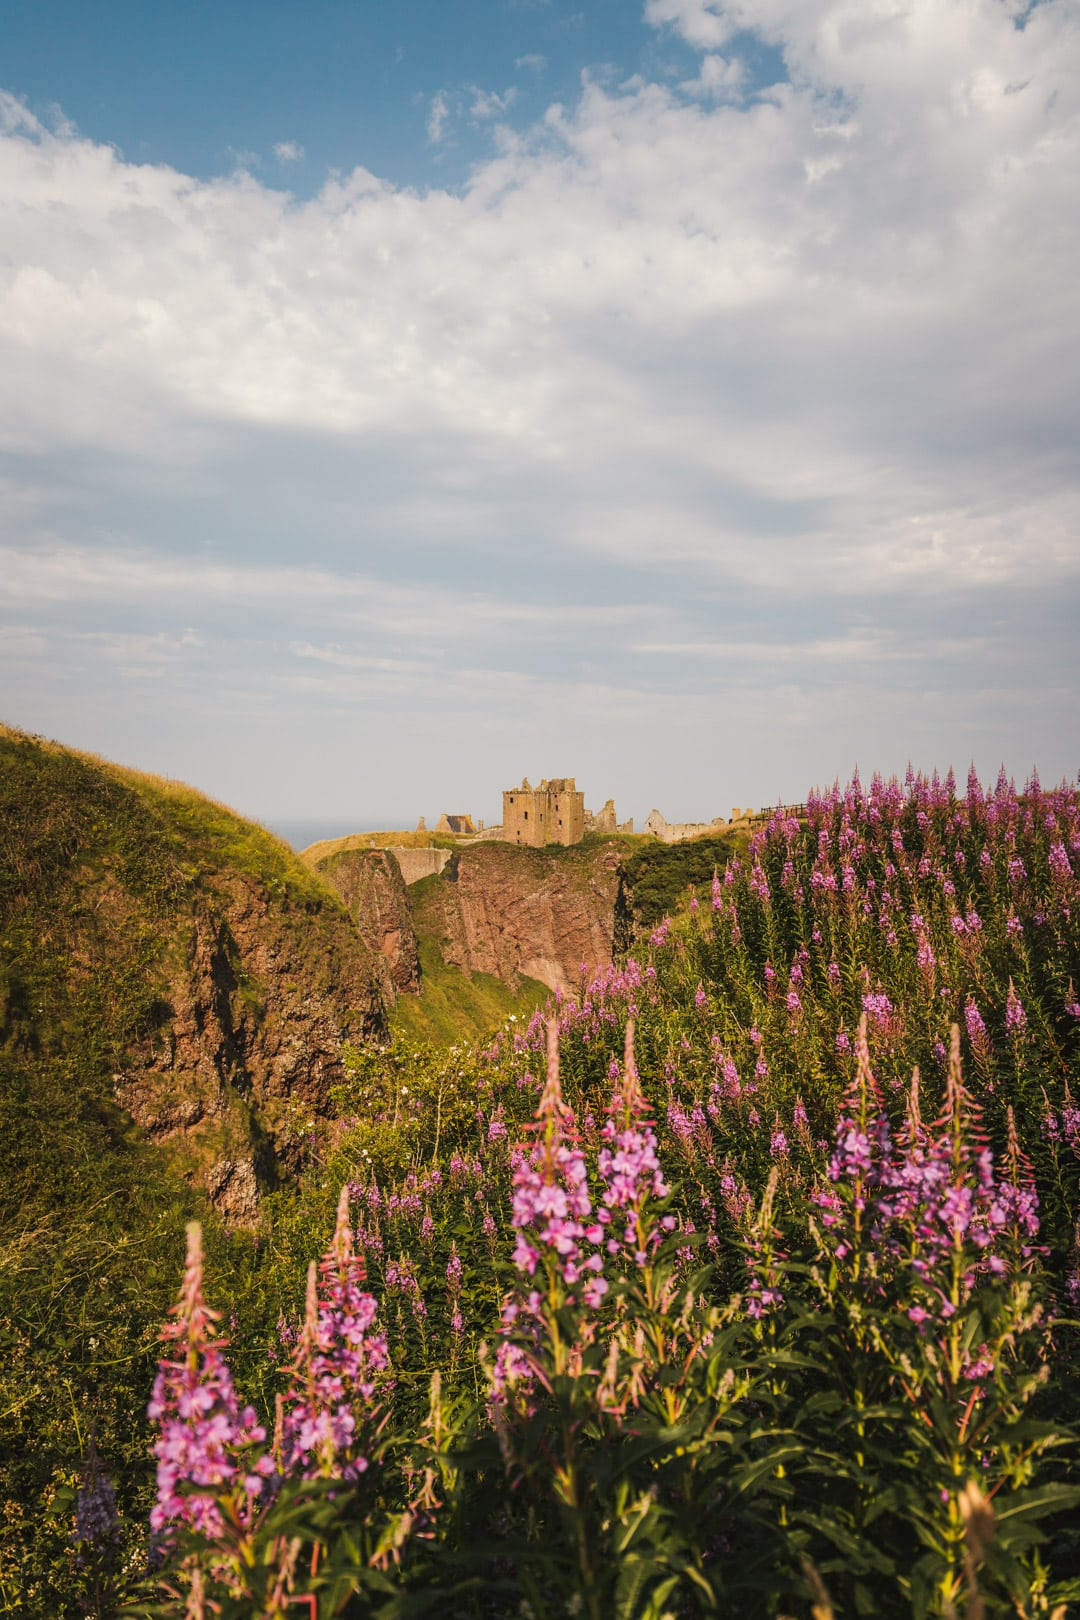 dunnottar castle in scotland united kingdom, Most Photographed Places in the World